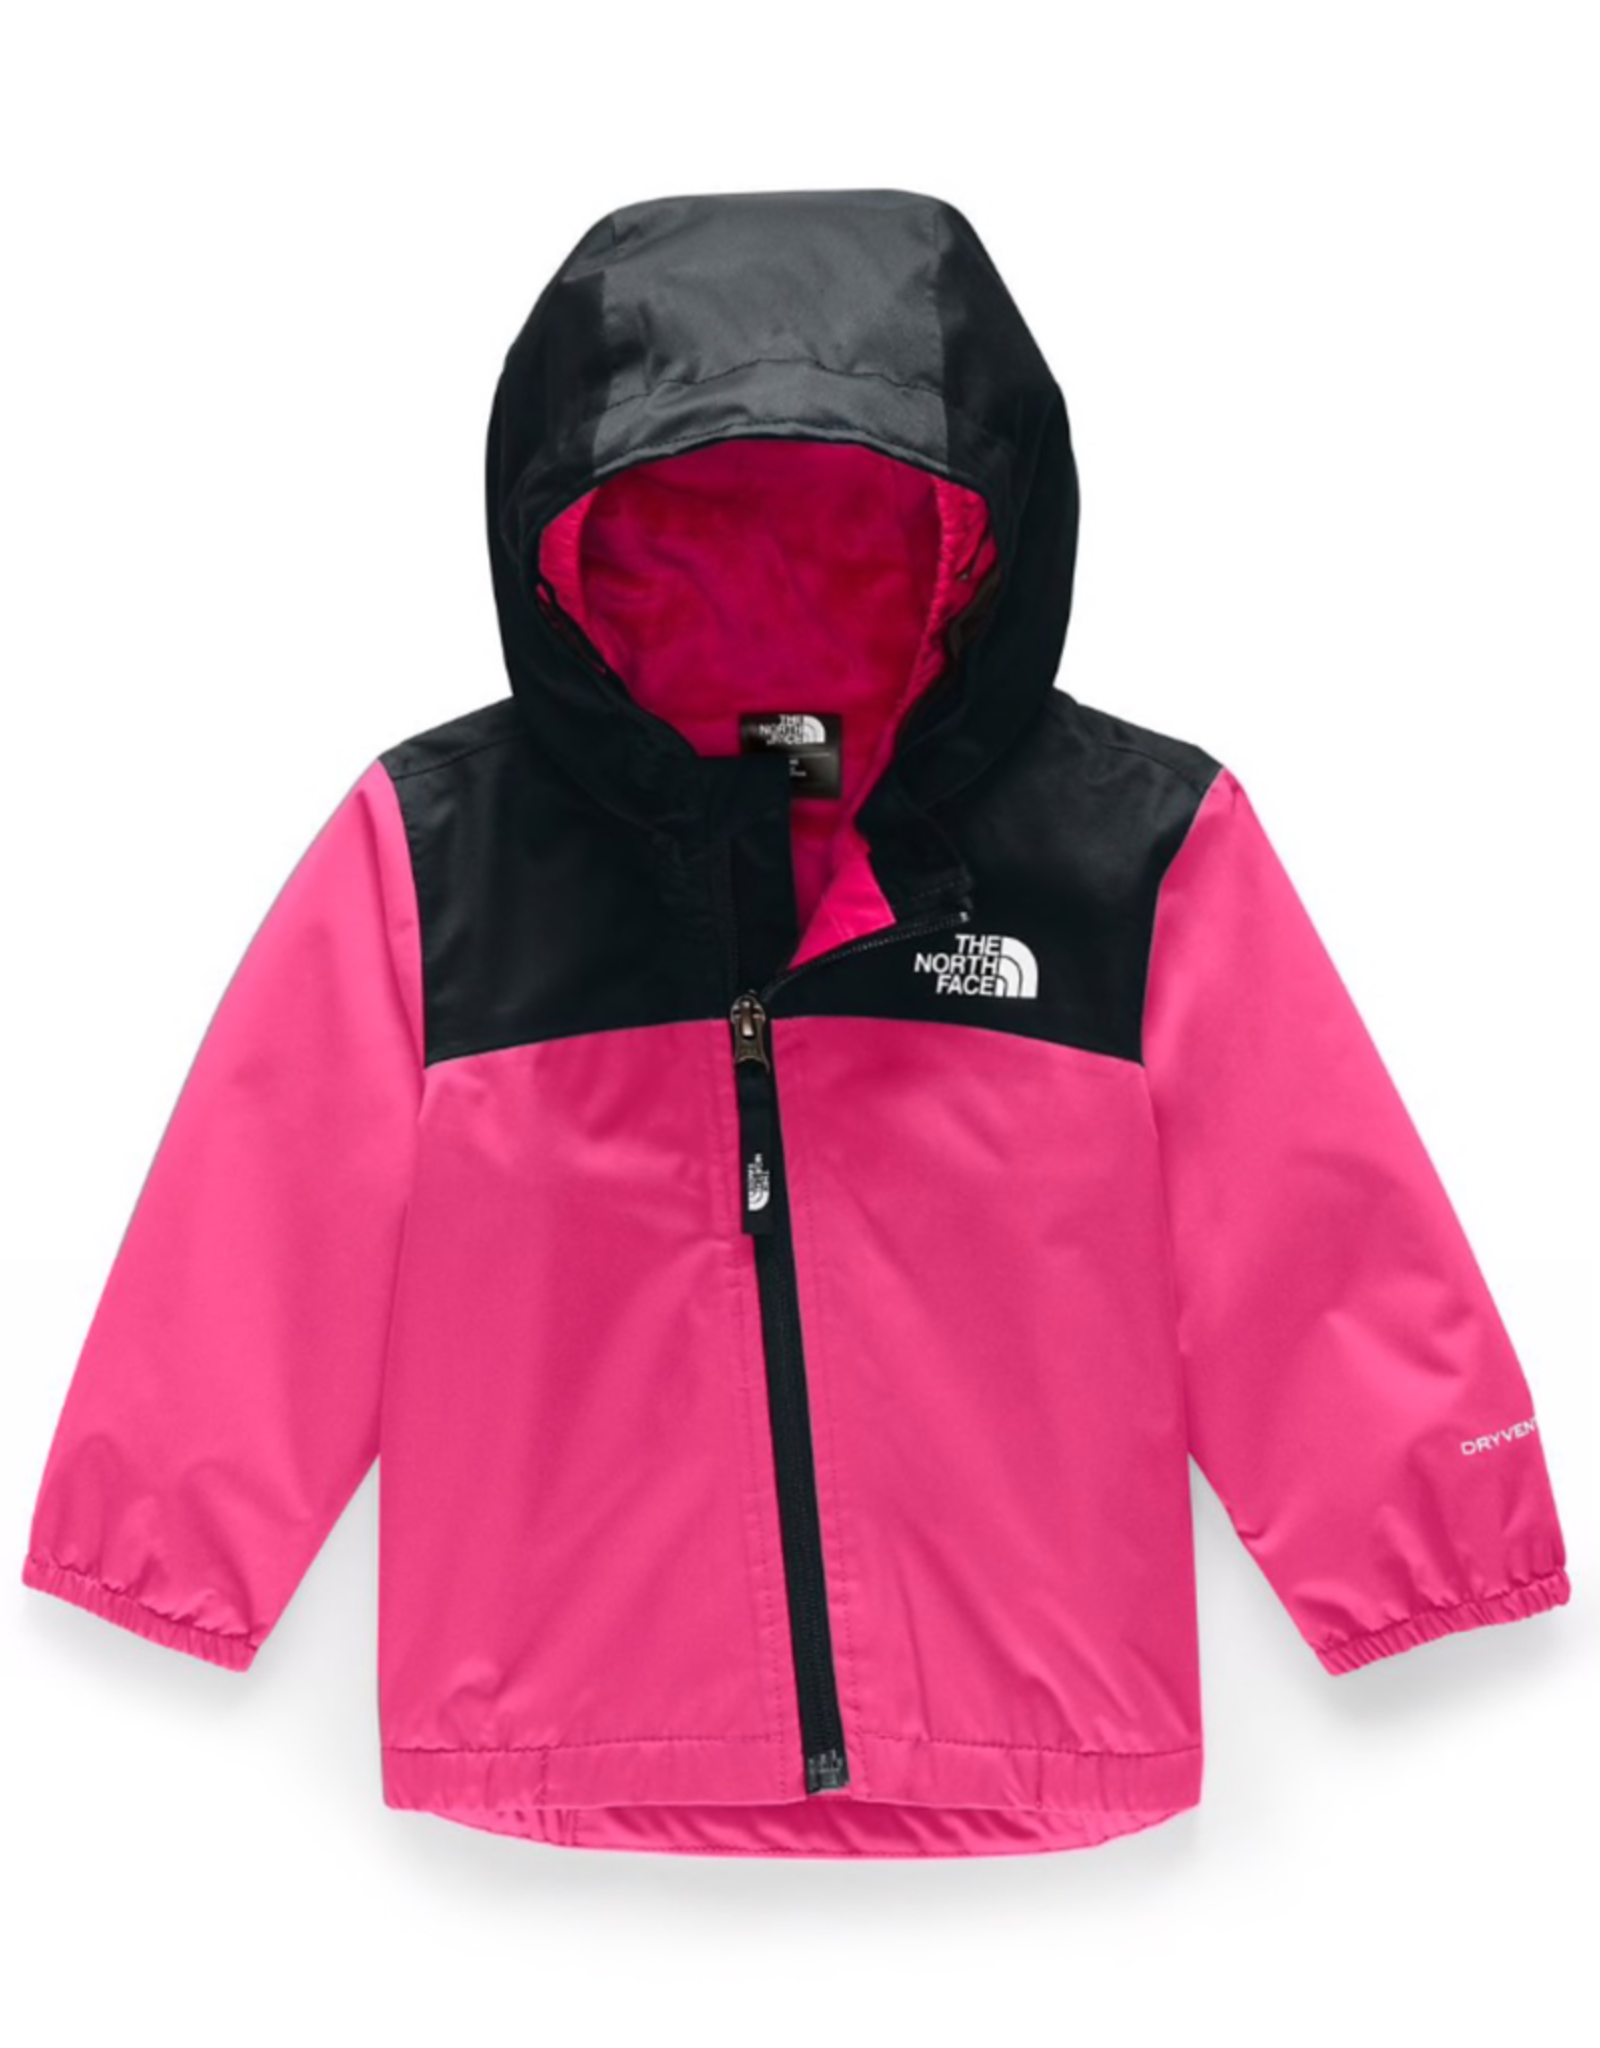 The North Face Girls' Infant Warm Storm Jacket in Mr. Pink